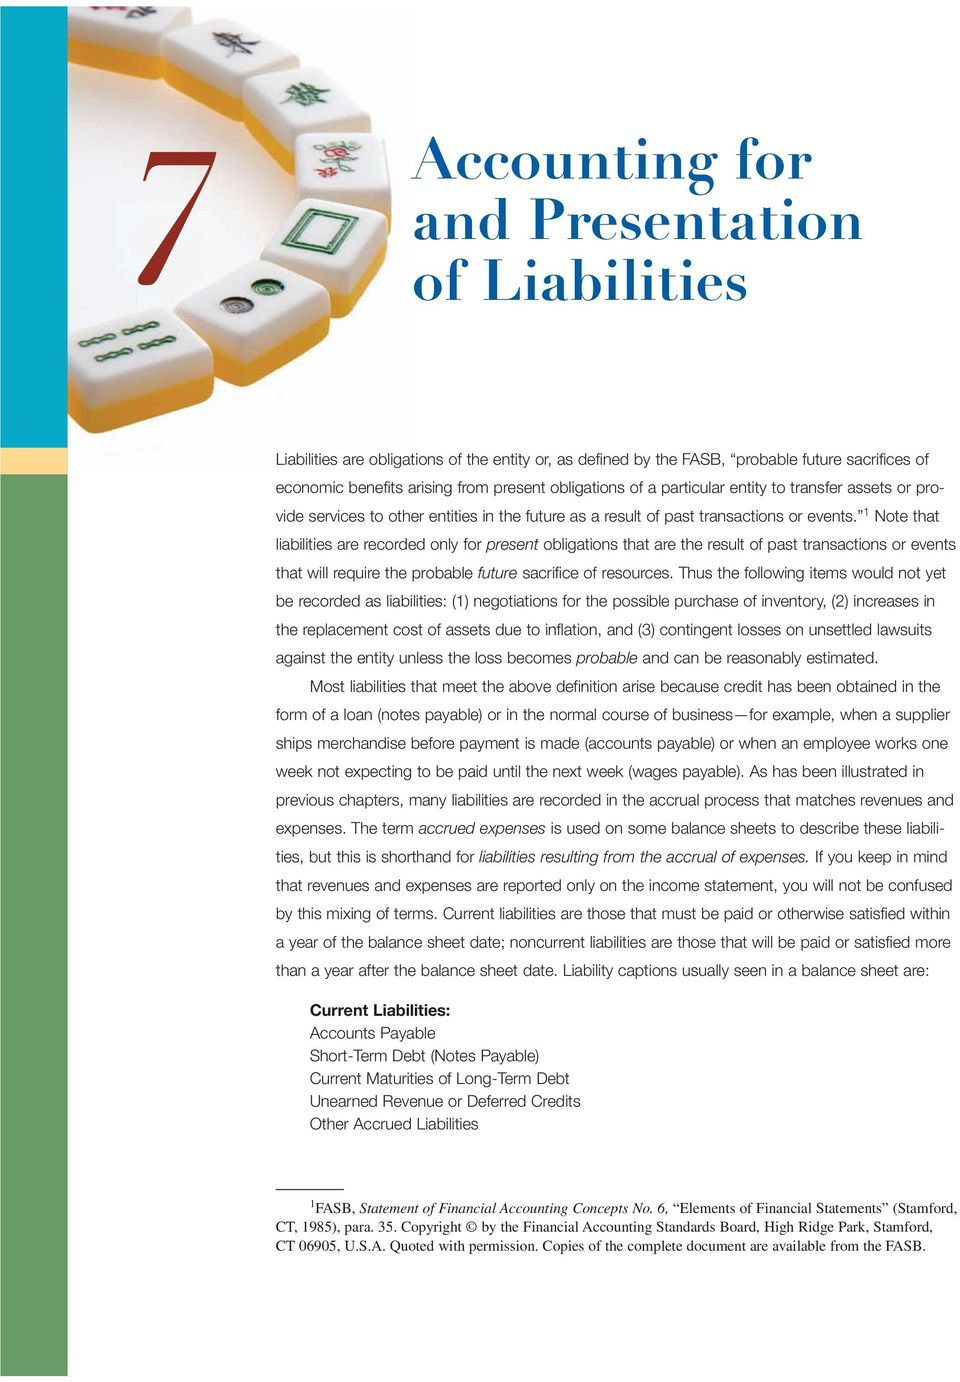 1 Note that liabilities are recorded only for present obligations that are the result of past transactions or events that will require the probable future sacrifice of resources.